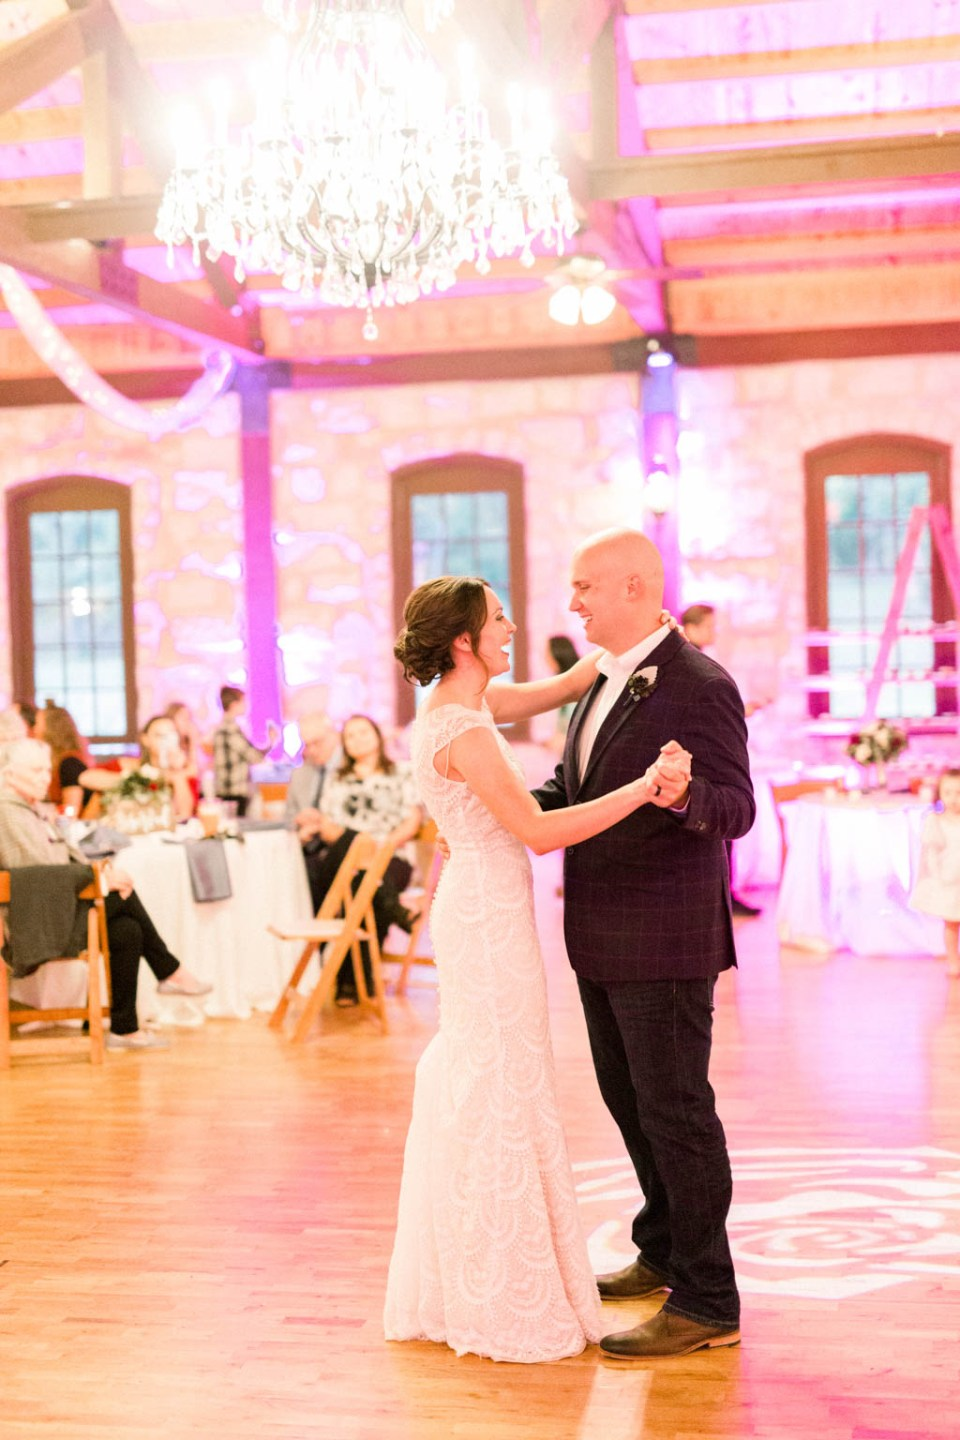 Shelby and Austin wedding by Adria Lea Photography at The Springs wedding venue